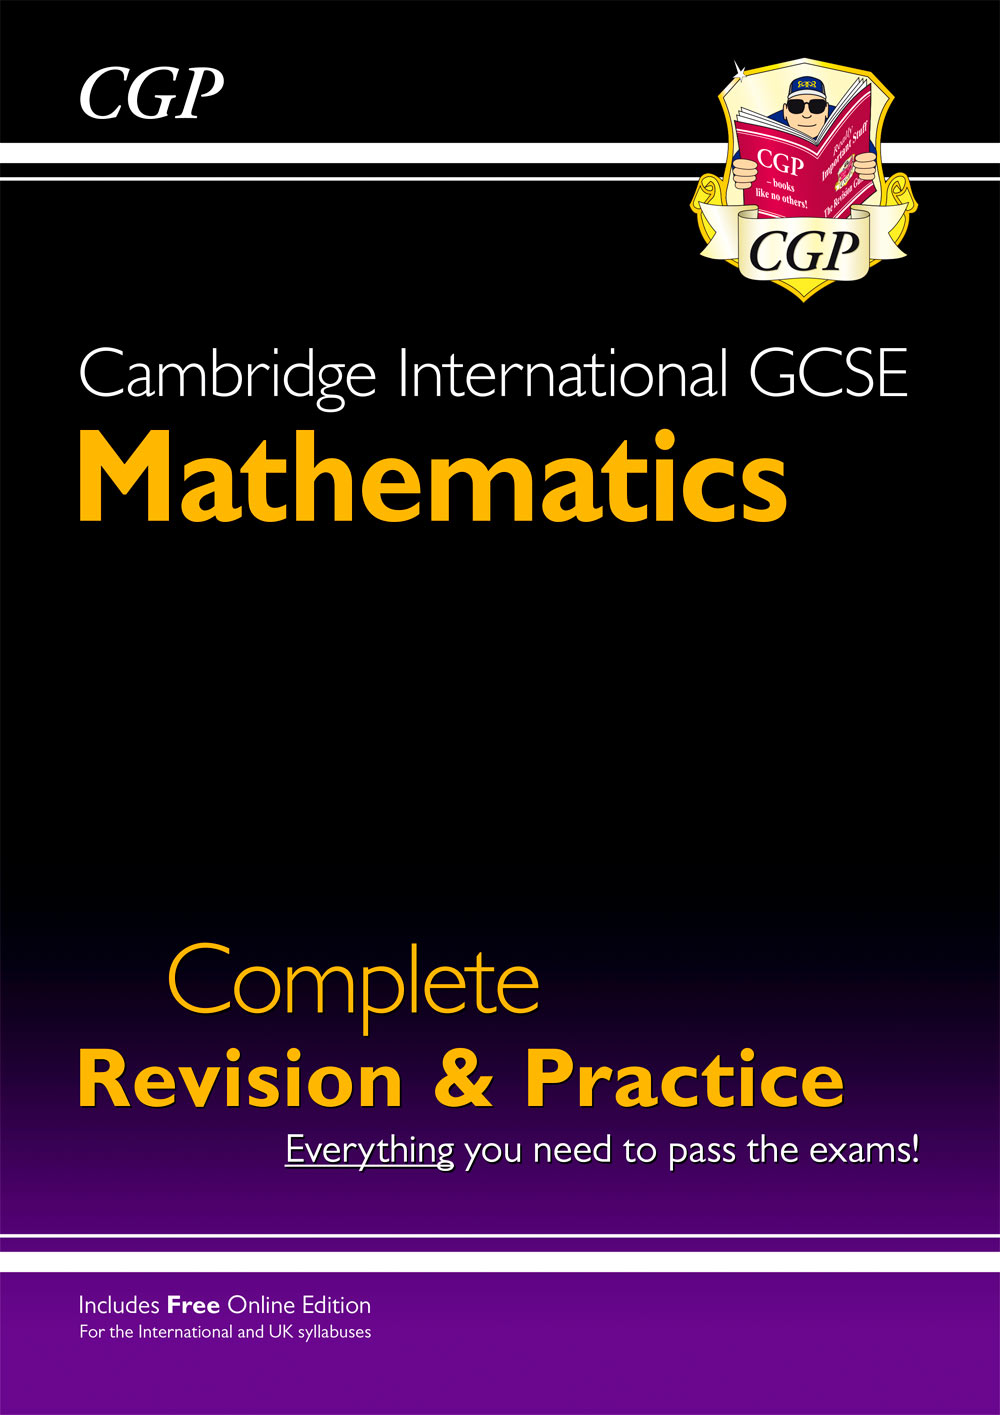 MISI41 - New Cambridge International GCSE Maths Complete Revision & Practice: Core & Extended + Onli